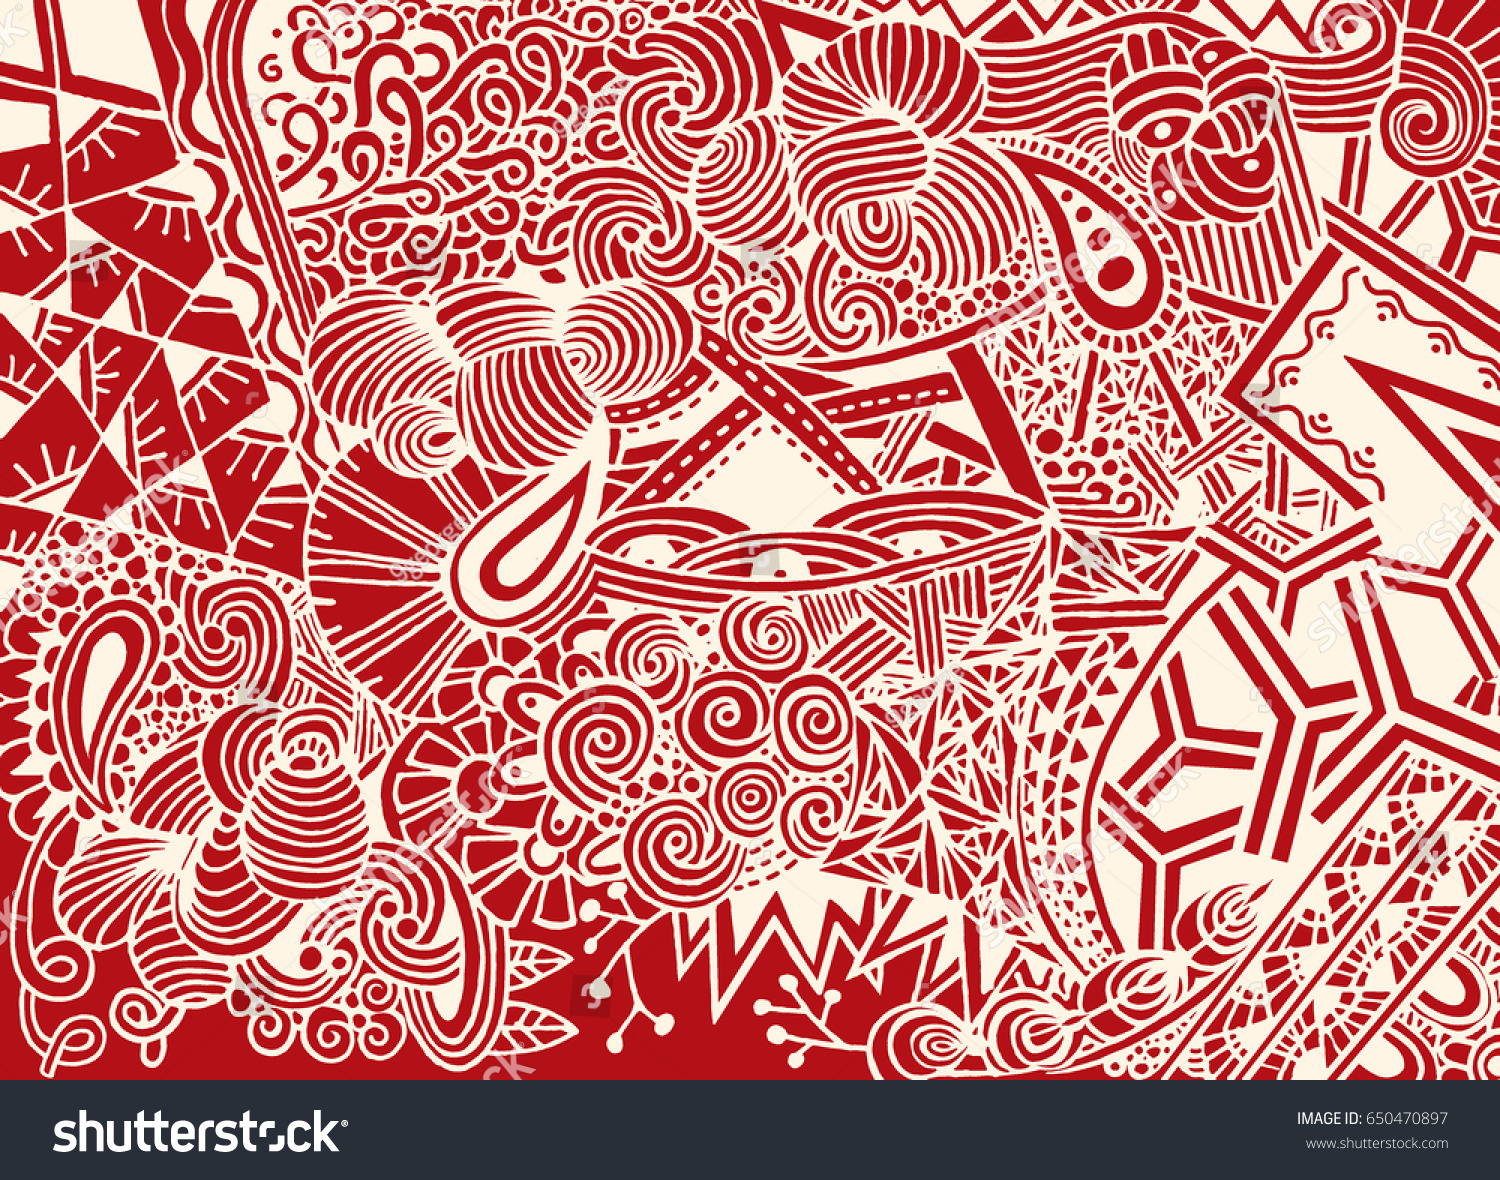 Doodle Background Vector Doodles Flowers Paisley Stock Vector ...